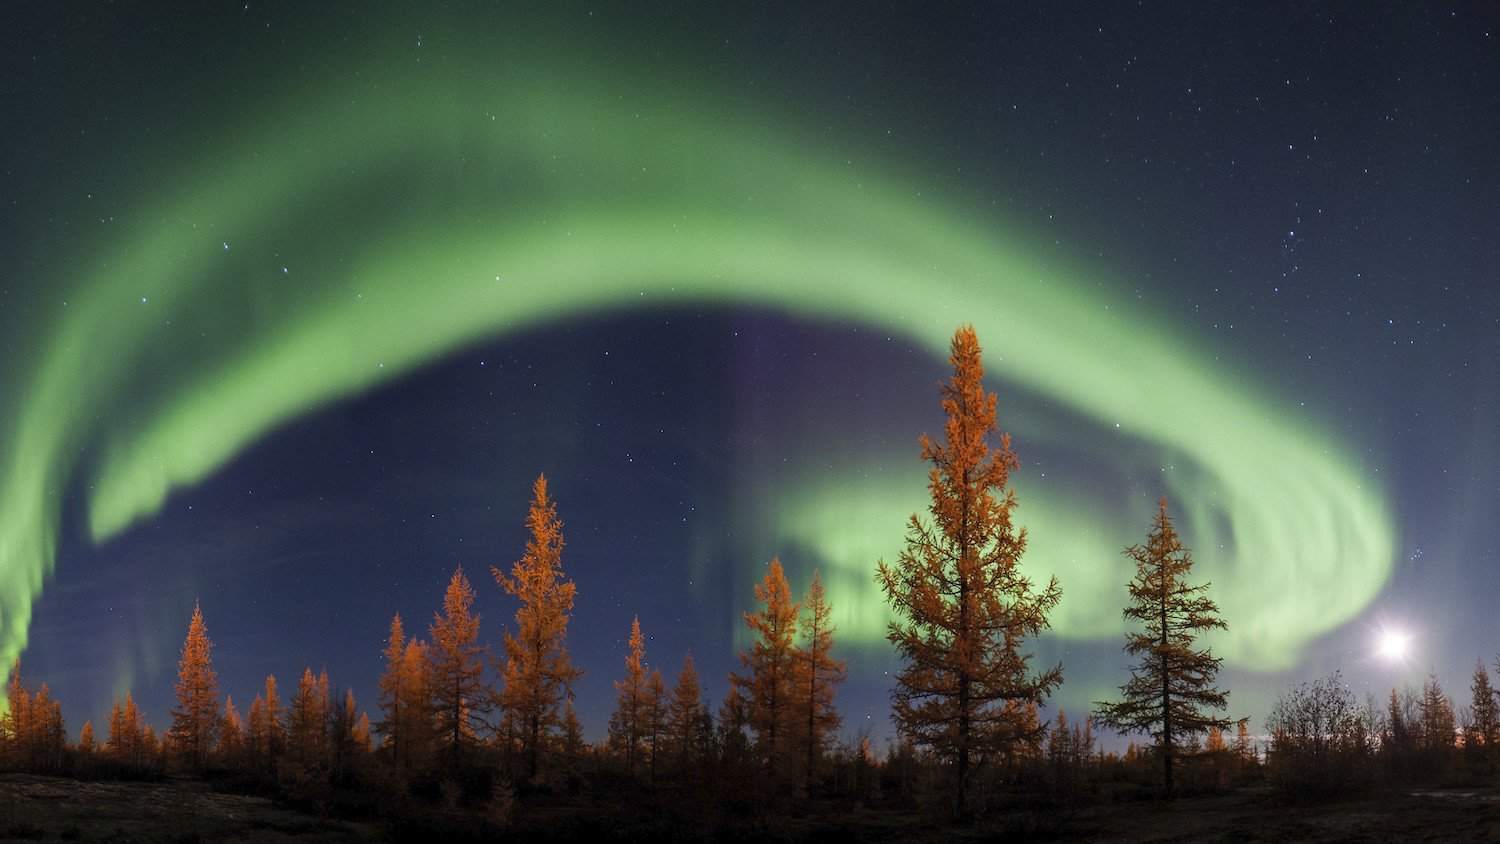 Northern Lights in Russia - Ajith Kumar via Flickr